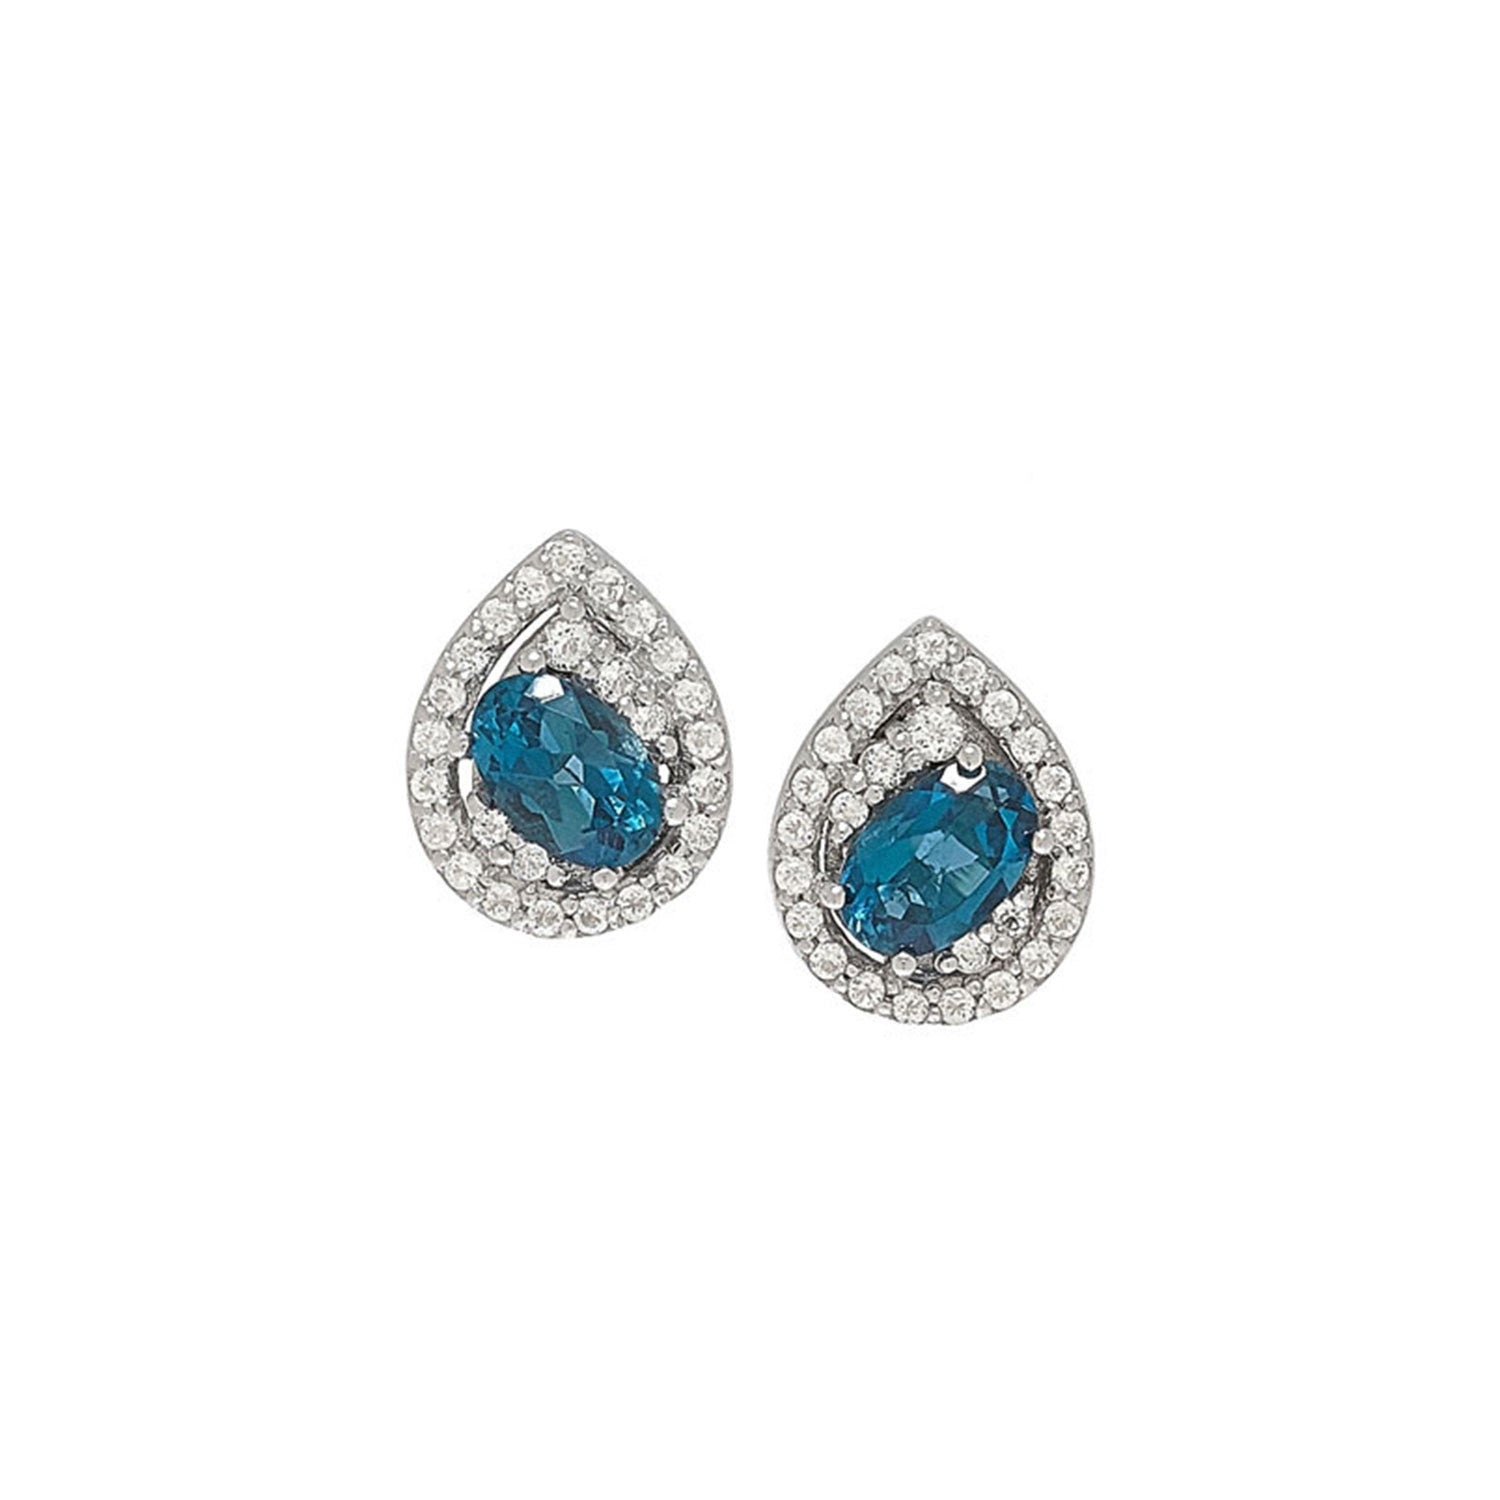 Razzle Dazzle Stud Earrings - More Colors